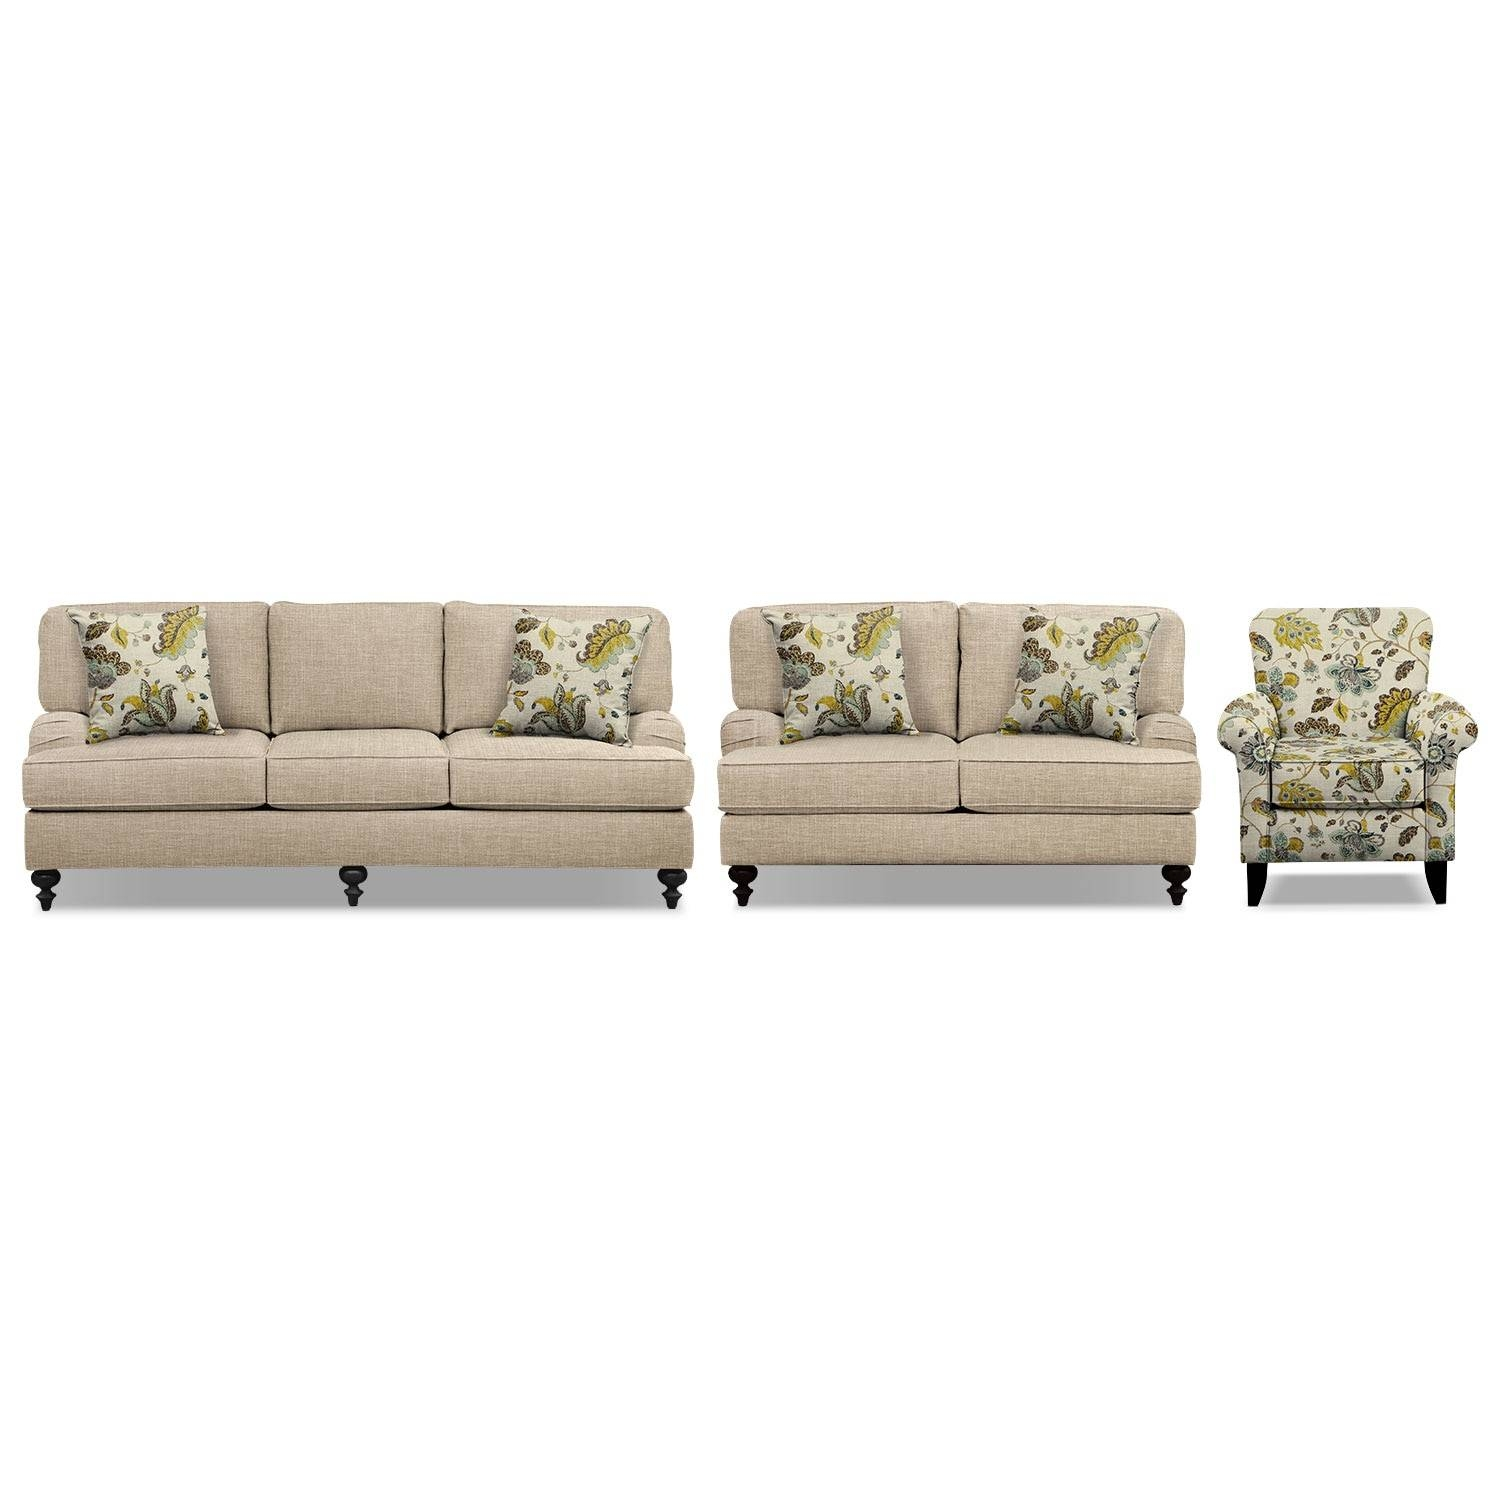 "Avery Taupe 86"" Memory Foam Sleeper Sofa, 62"" Sofa And Accent intended for Sofa And Accent Chair Set (Image 5 of 30)"